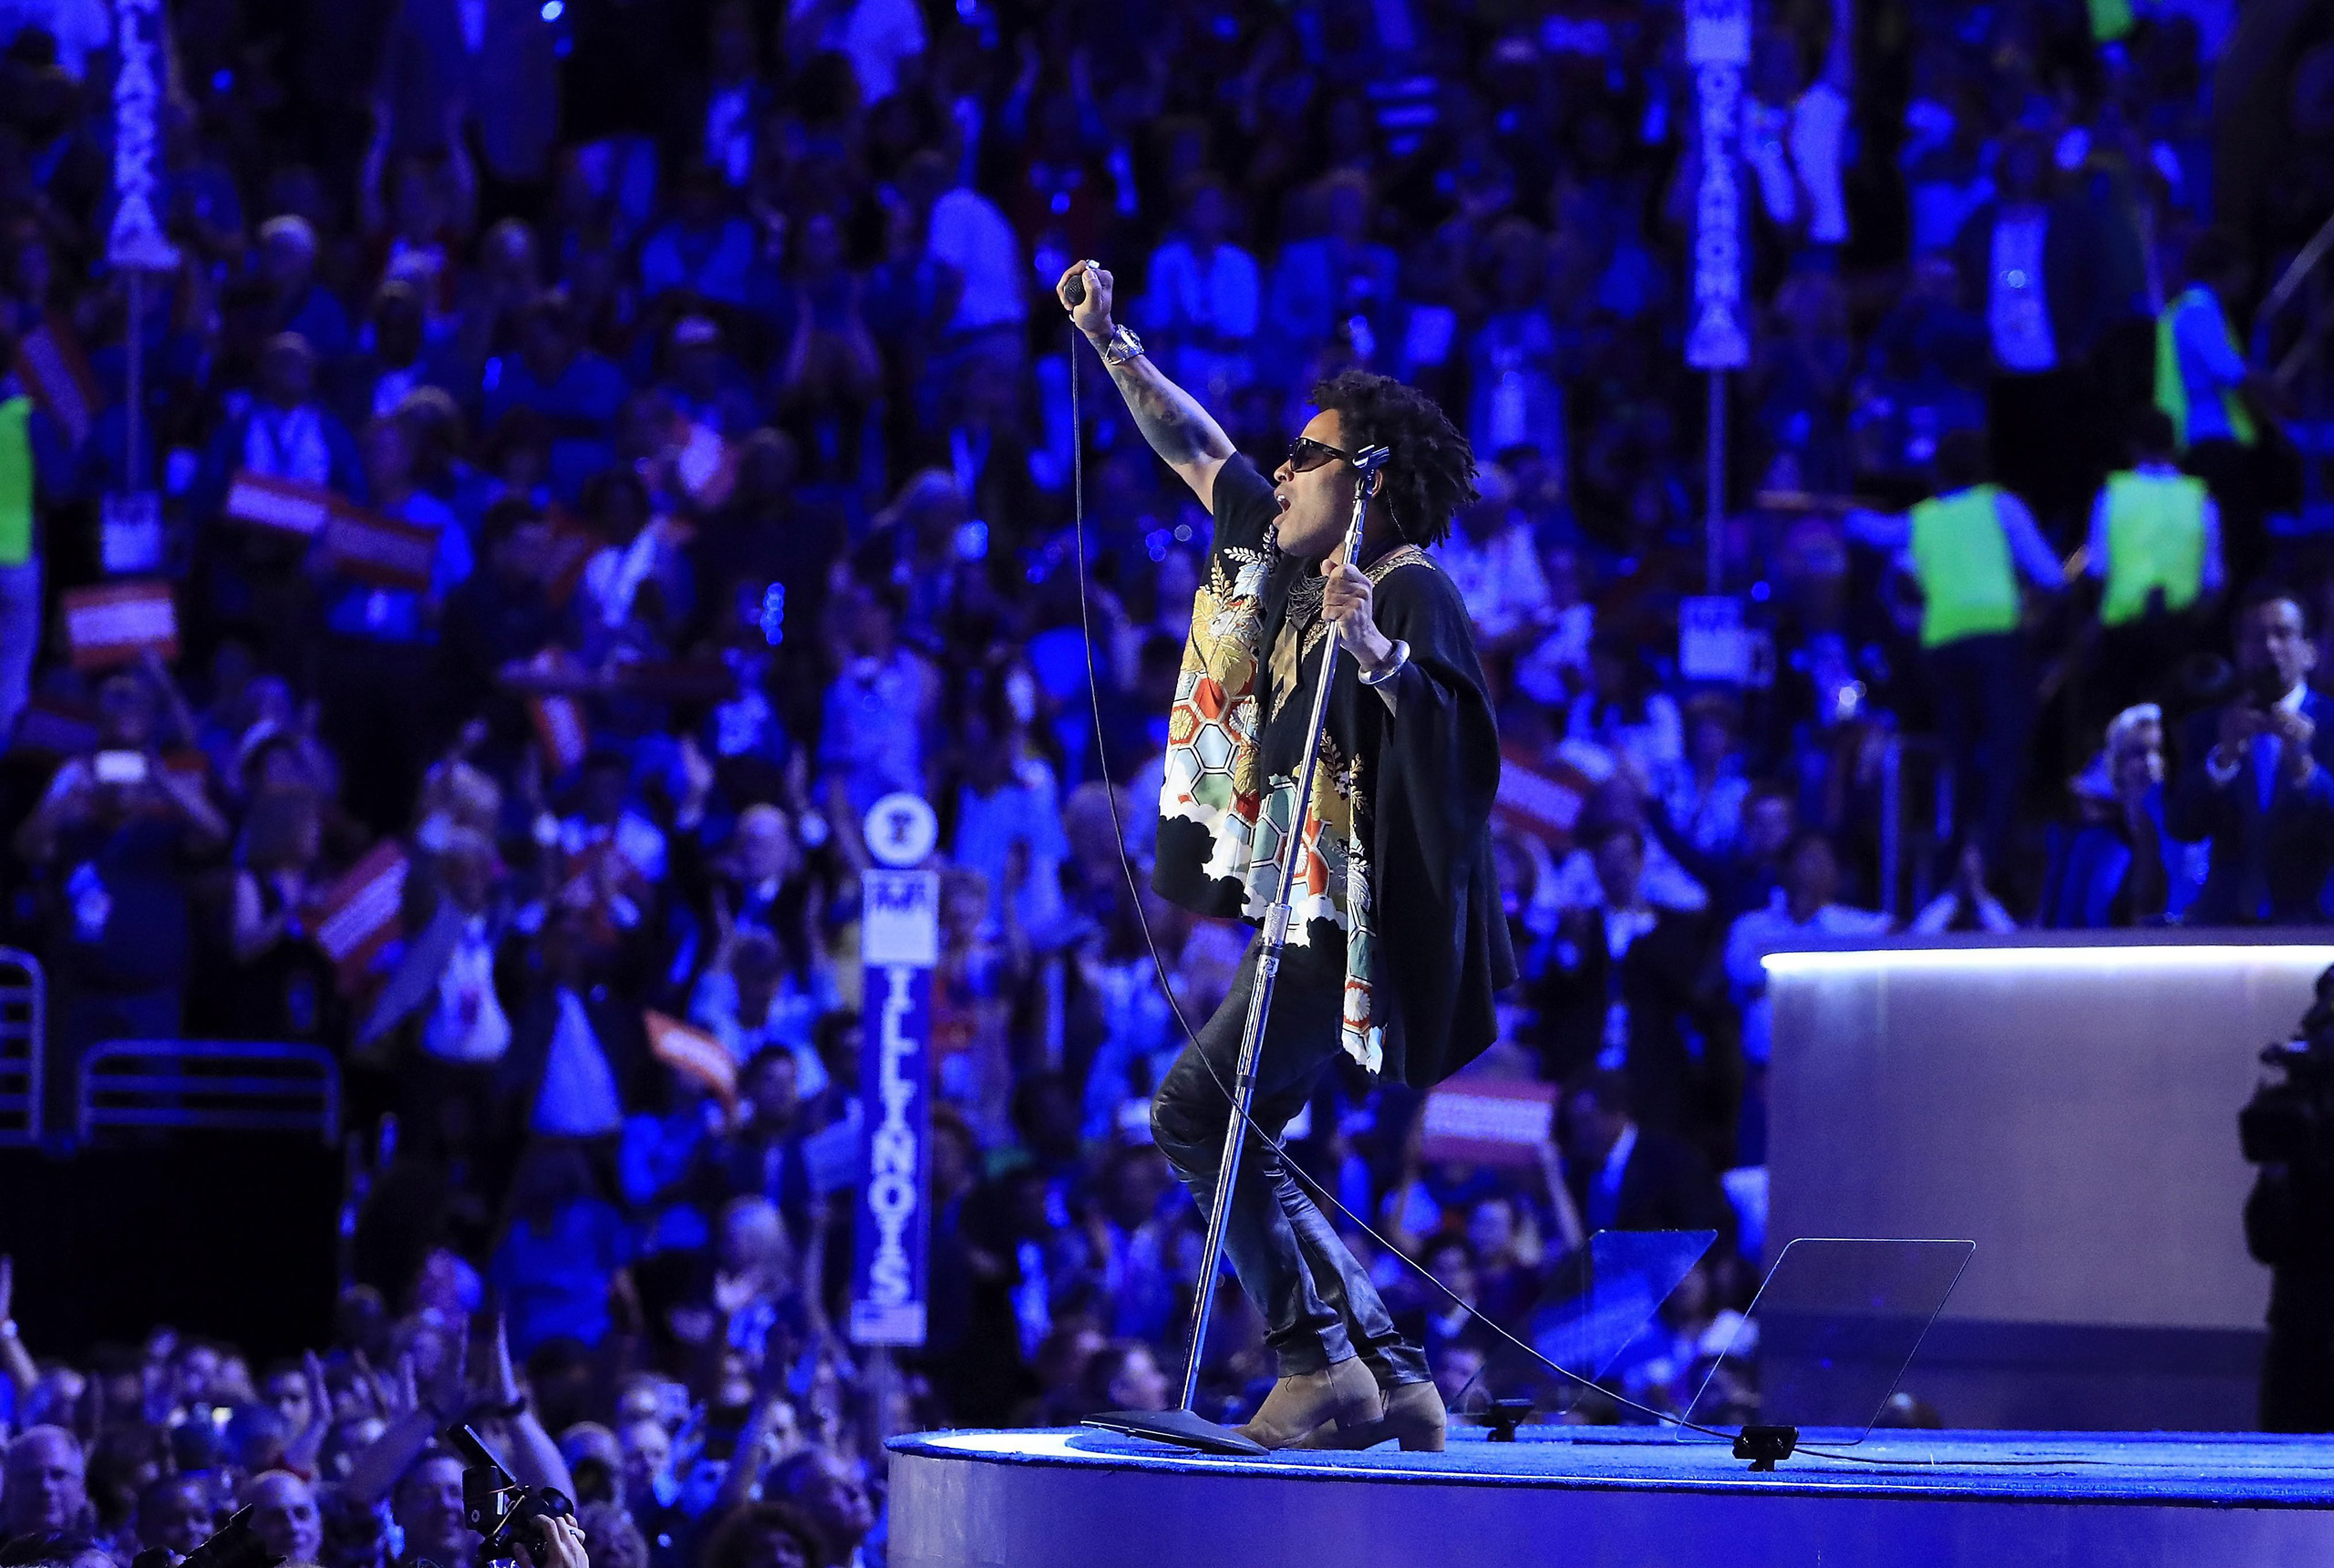 Lenny Kravitz performs during the third day of the Democratic National Convention at the Wells Fargo Center in Philadelphia on July 26, 2016.